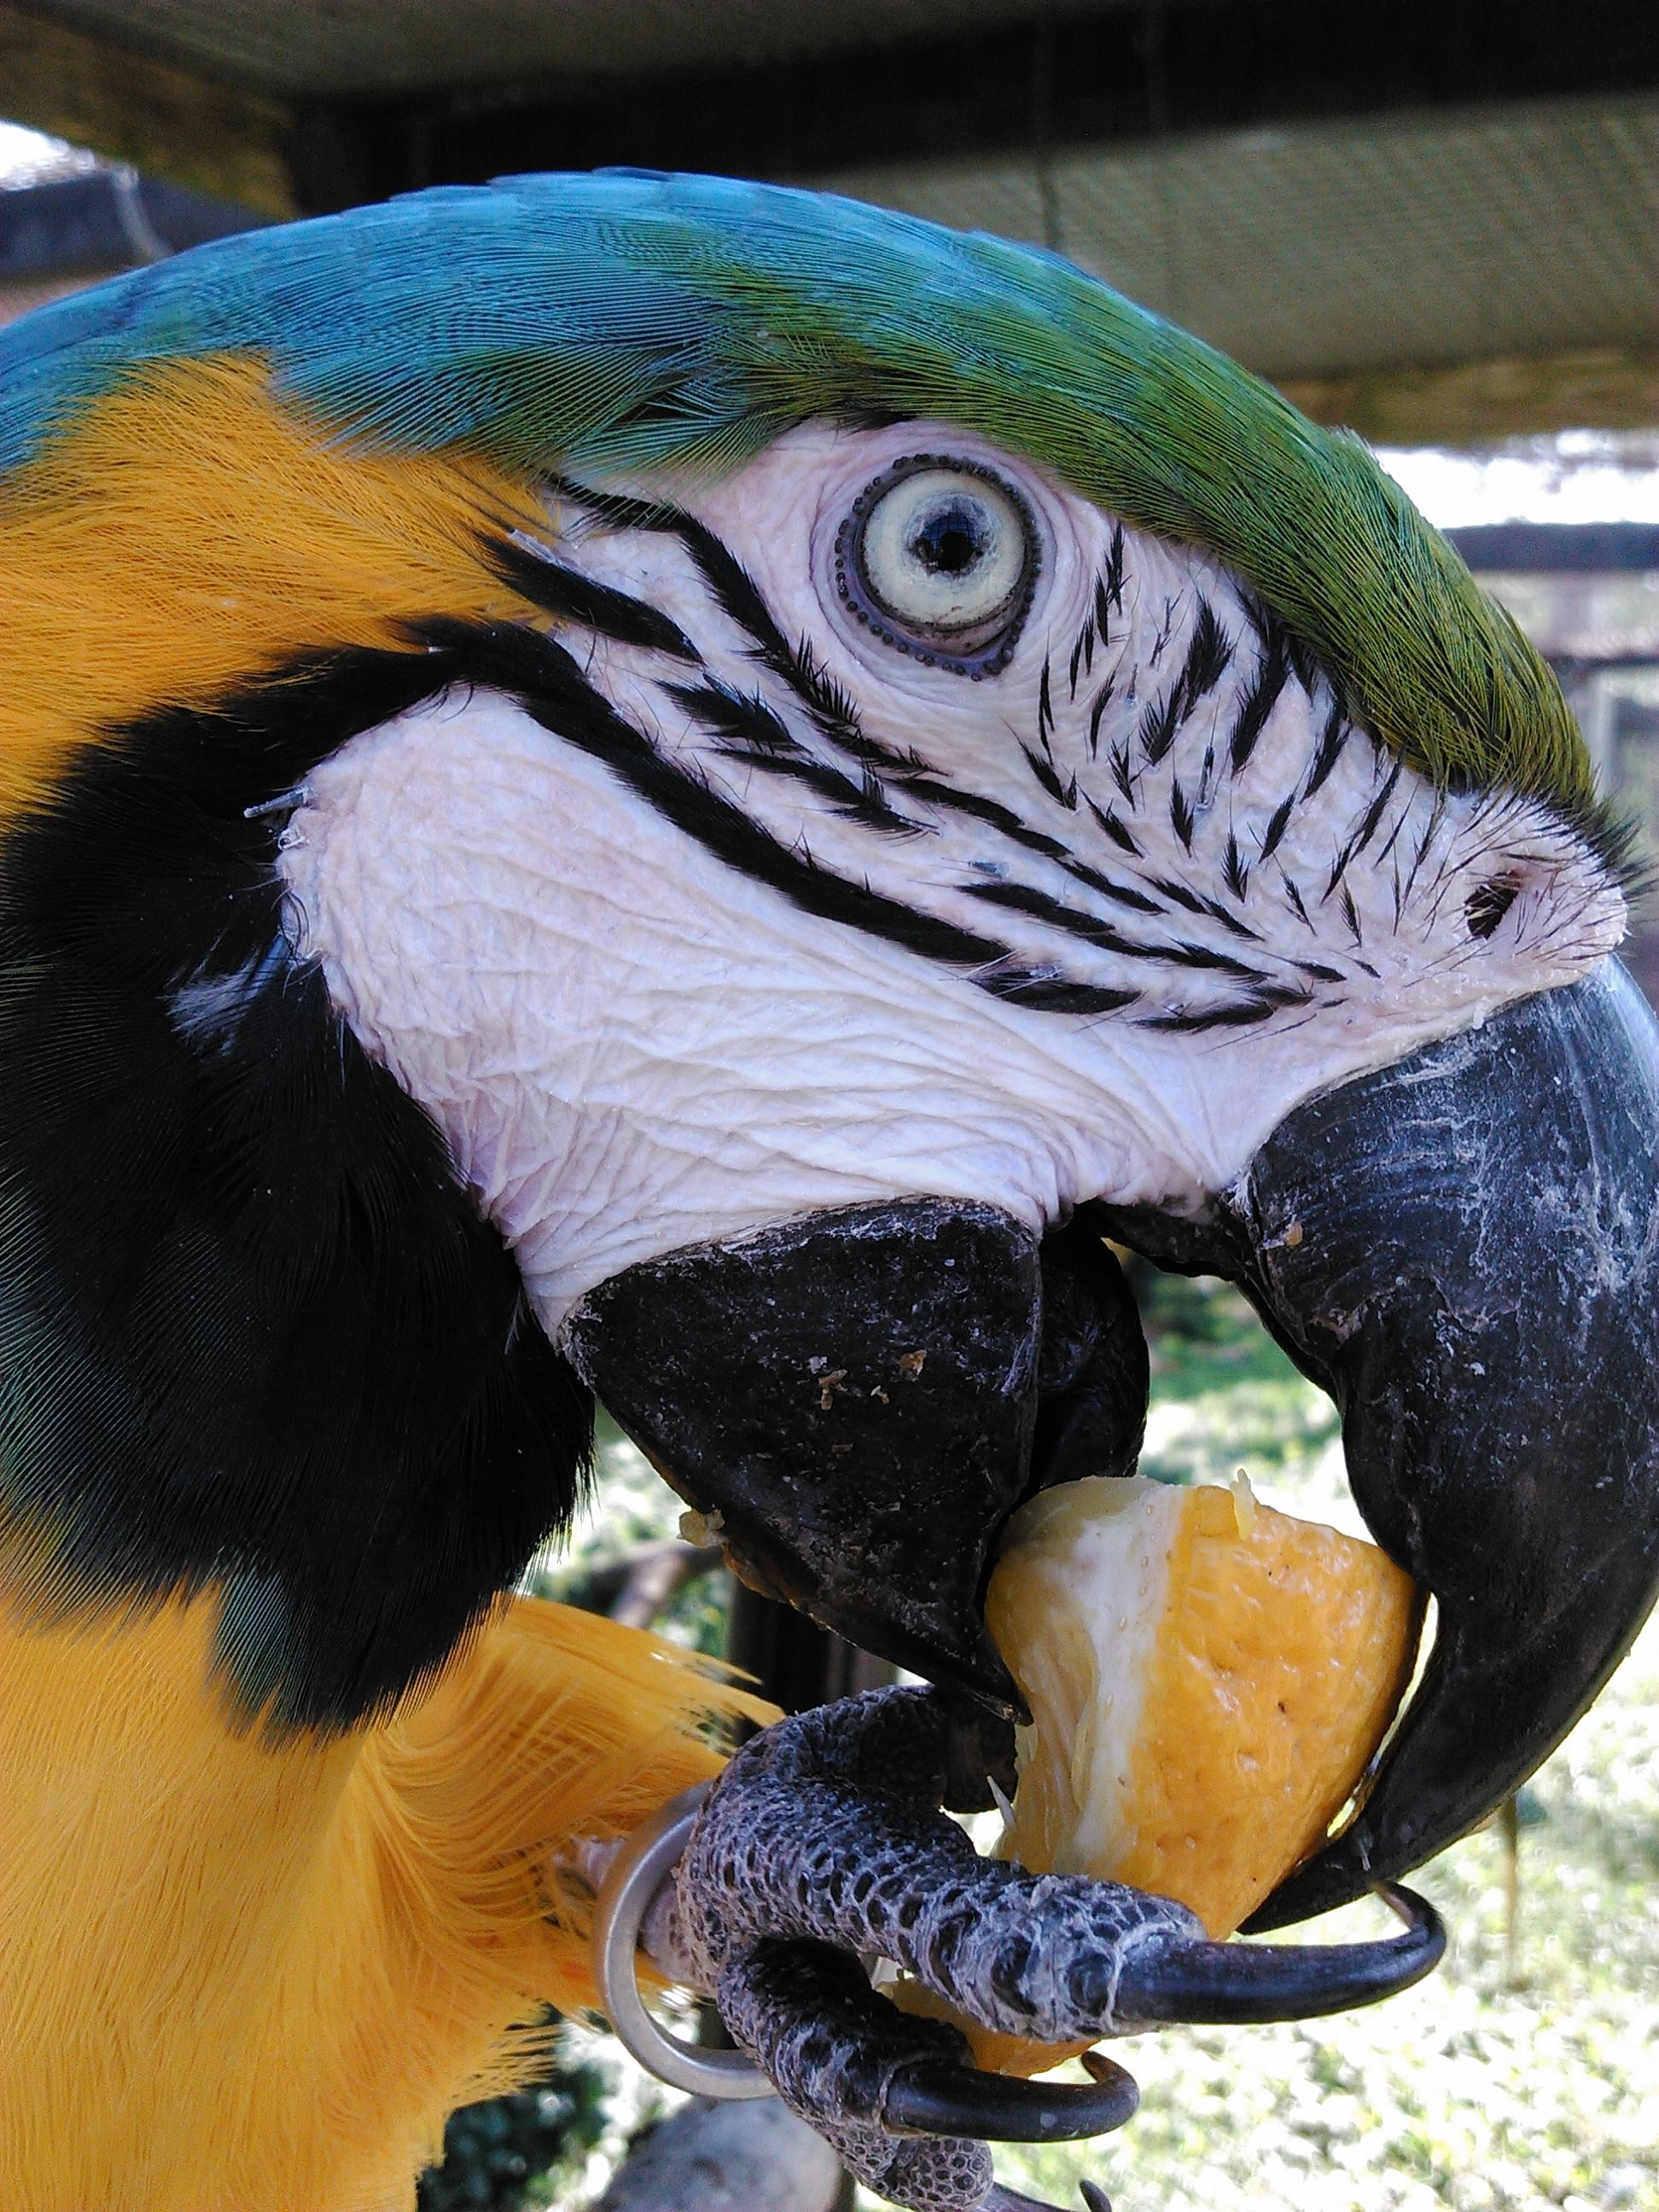 A parrot eating a lemon slice.